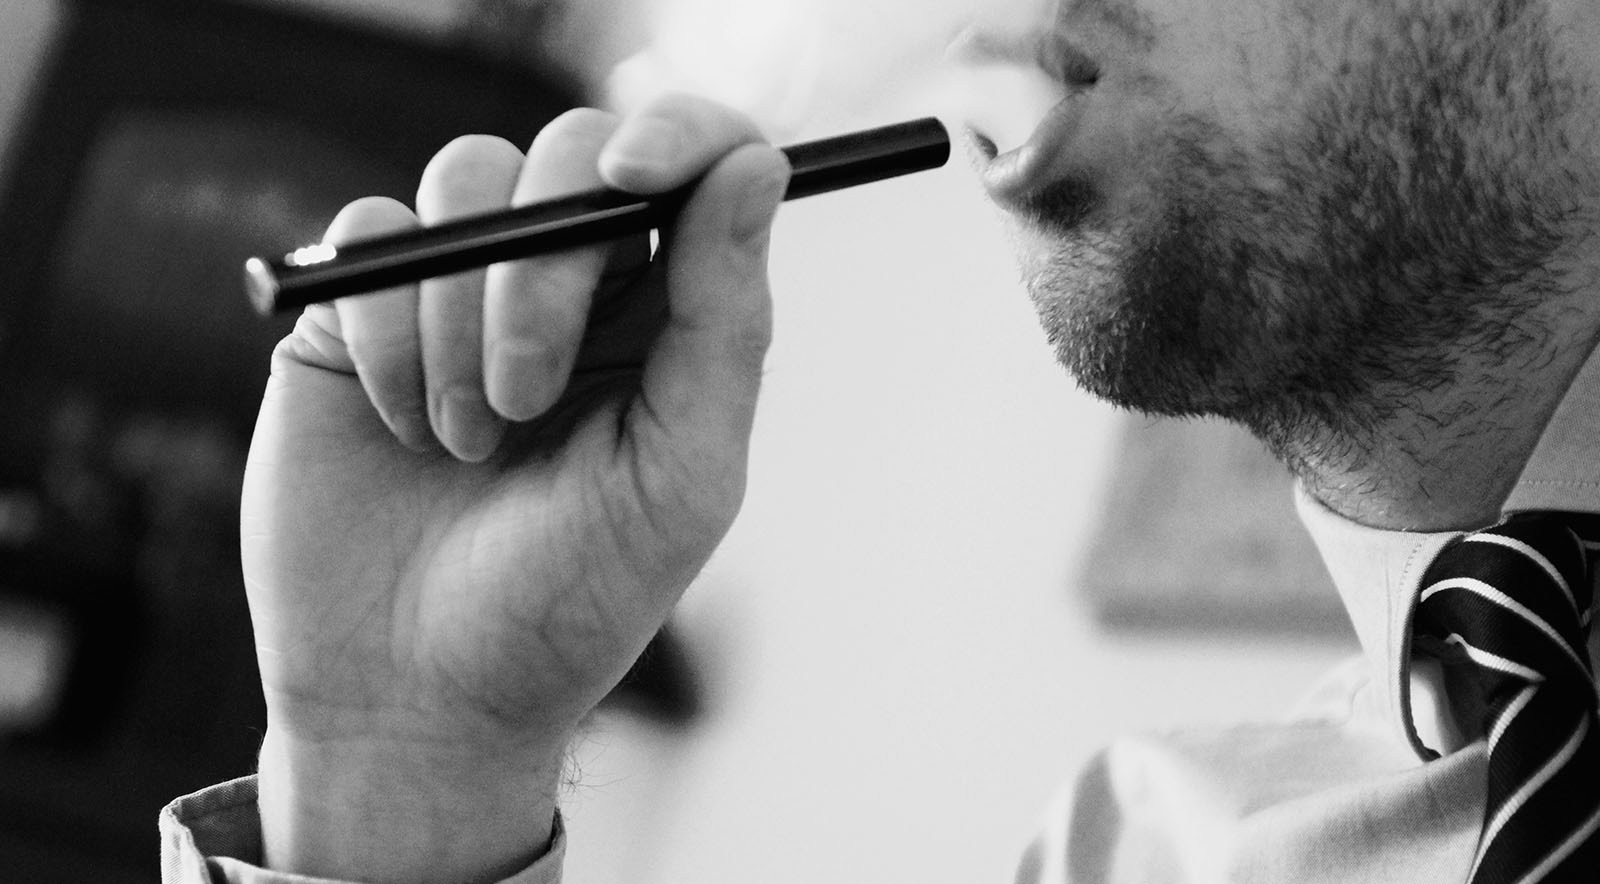 The Do's and Don'ts of Using Weed at Work